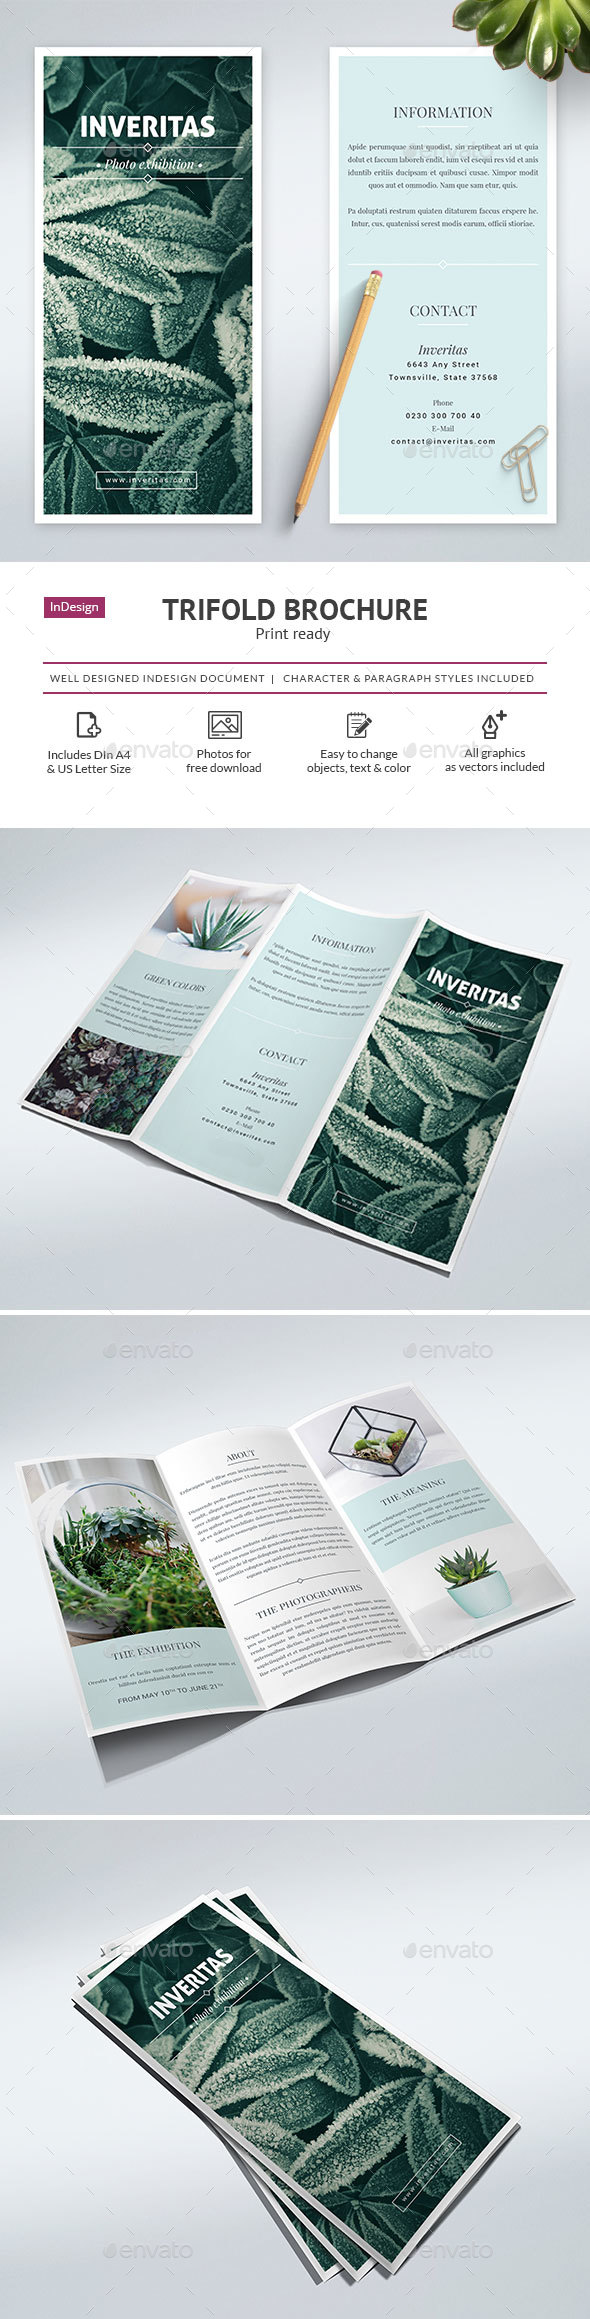 Clean Trifold Brochure Vol. 1 - Corporate Brochures